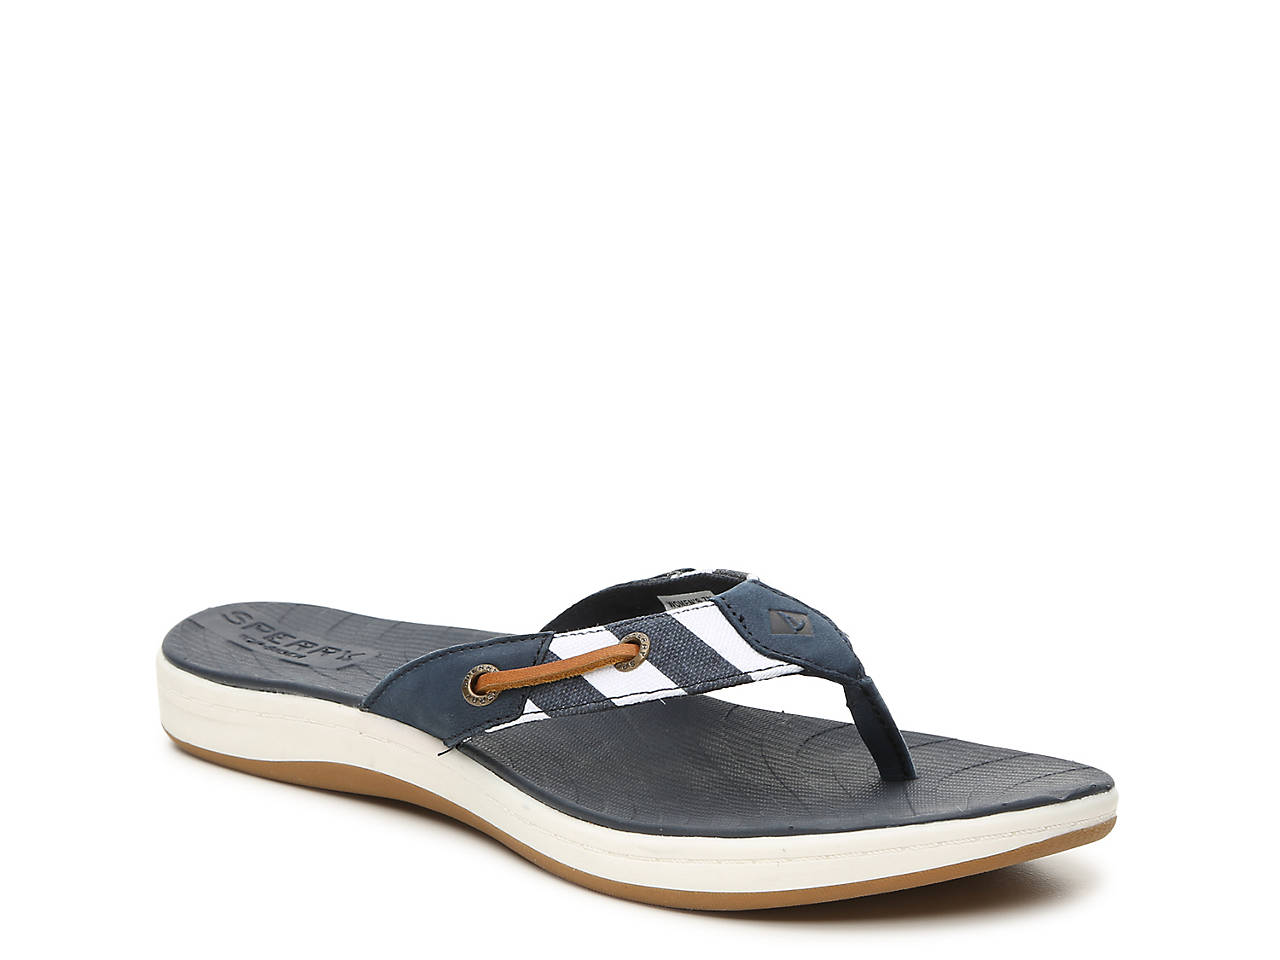 96cec823a Sperry Top-Sider Seabrook Surf Sandal Women s Shoes